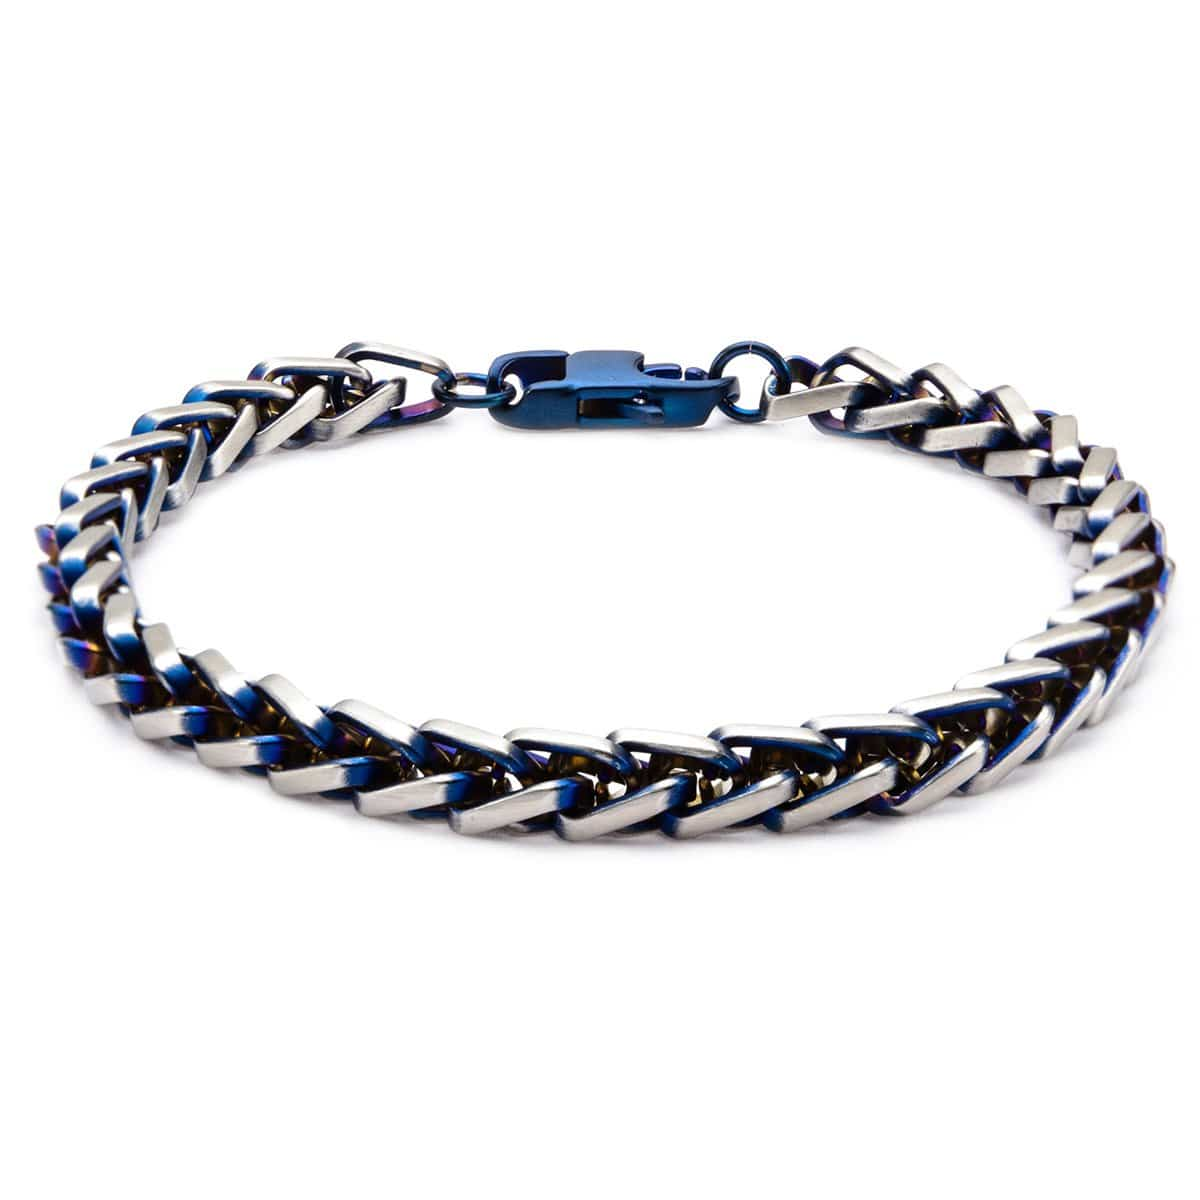 Blue & Silver Stainless Steel Rounded Franco Chain Denim Fade Bracelet